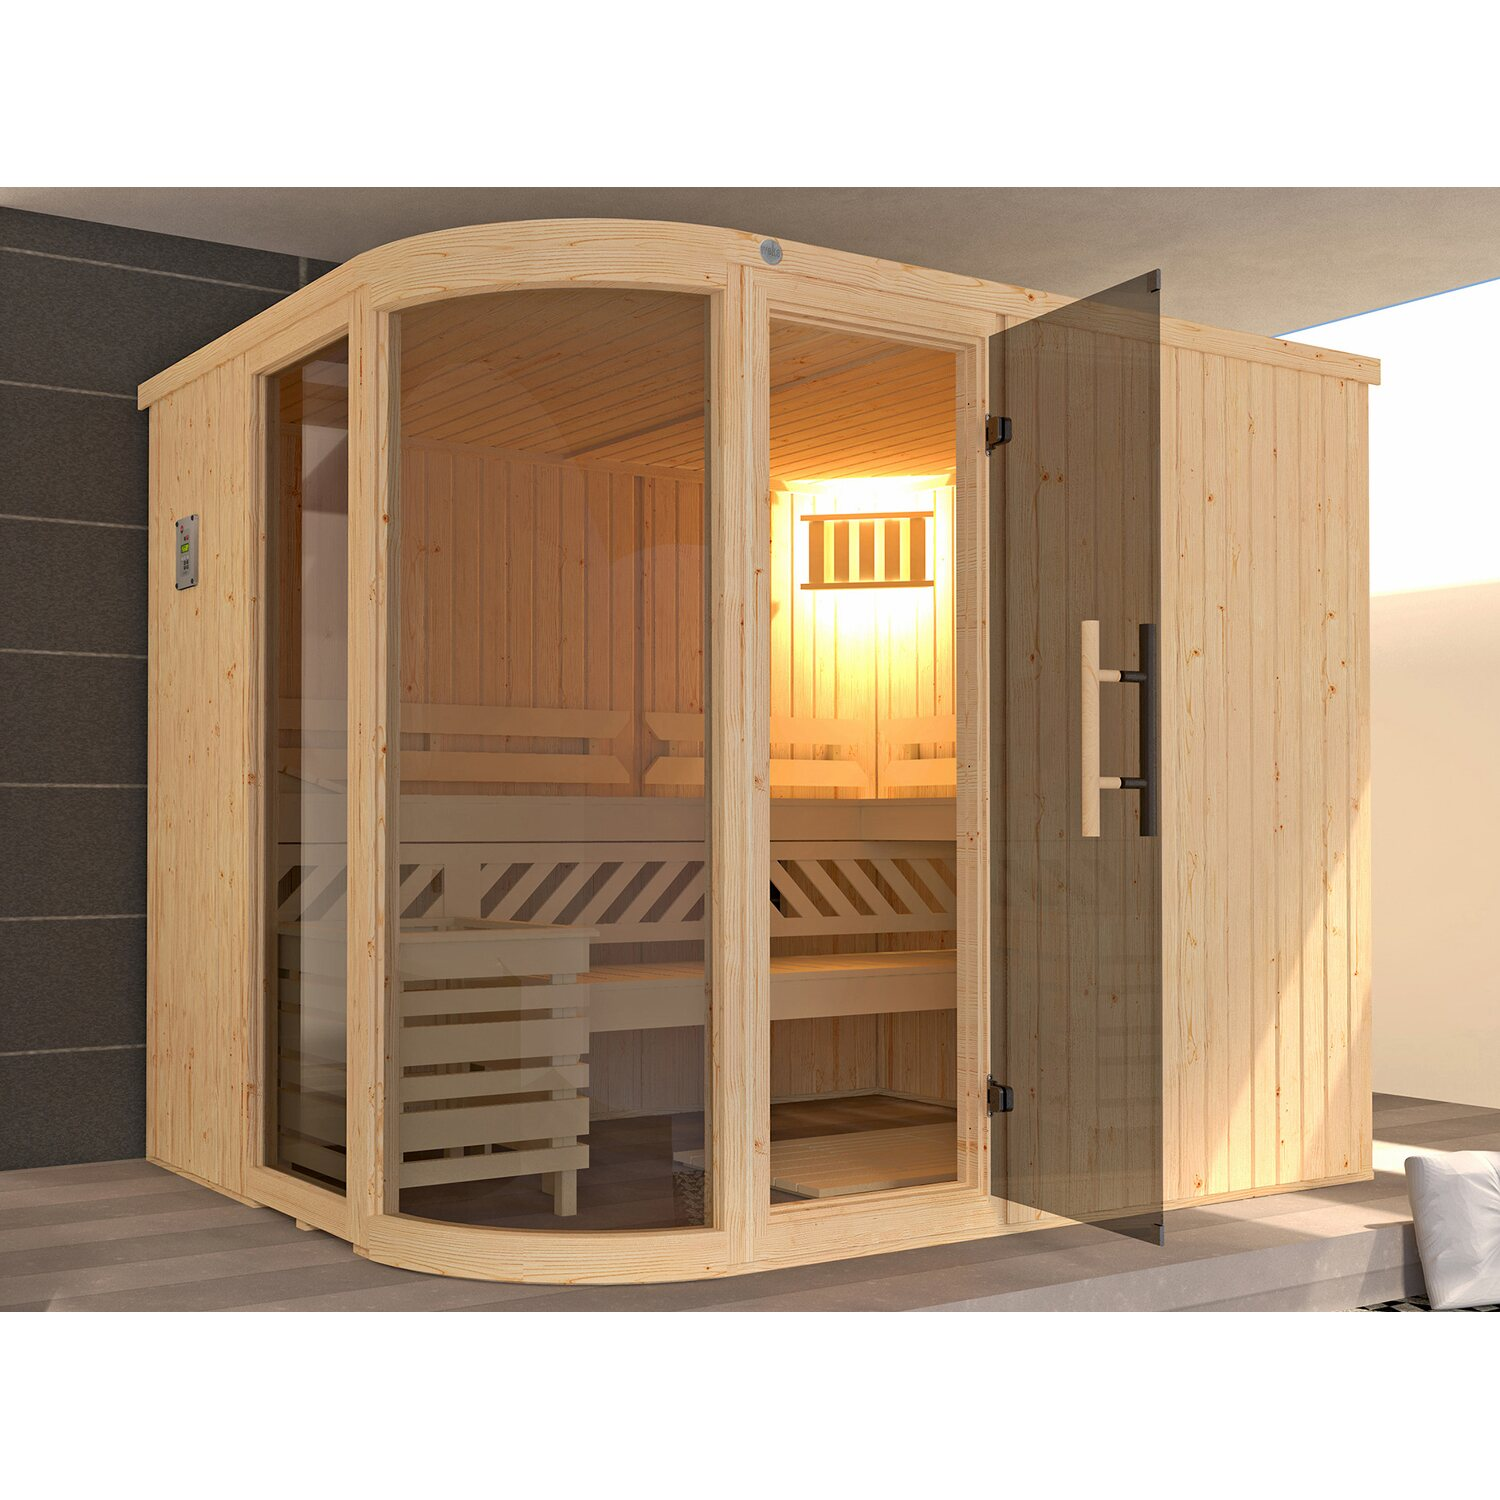 gebrauchte sauna kaufen gebrauchte sauna zu verkaufen schwimmbad und saunen sauna gebraucht. Black Bedroom Furniture Sets. Home Design Ideas